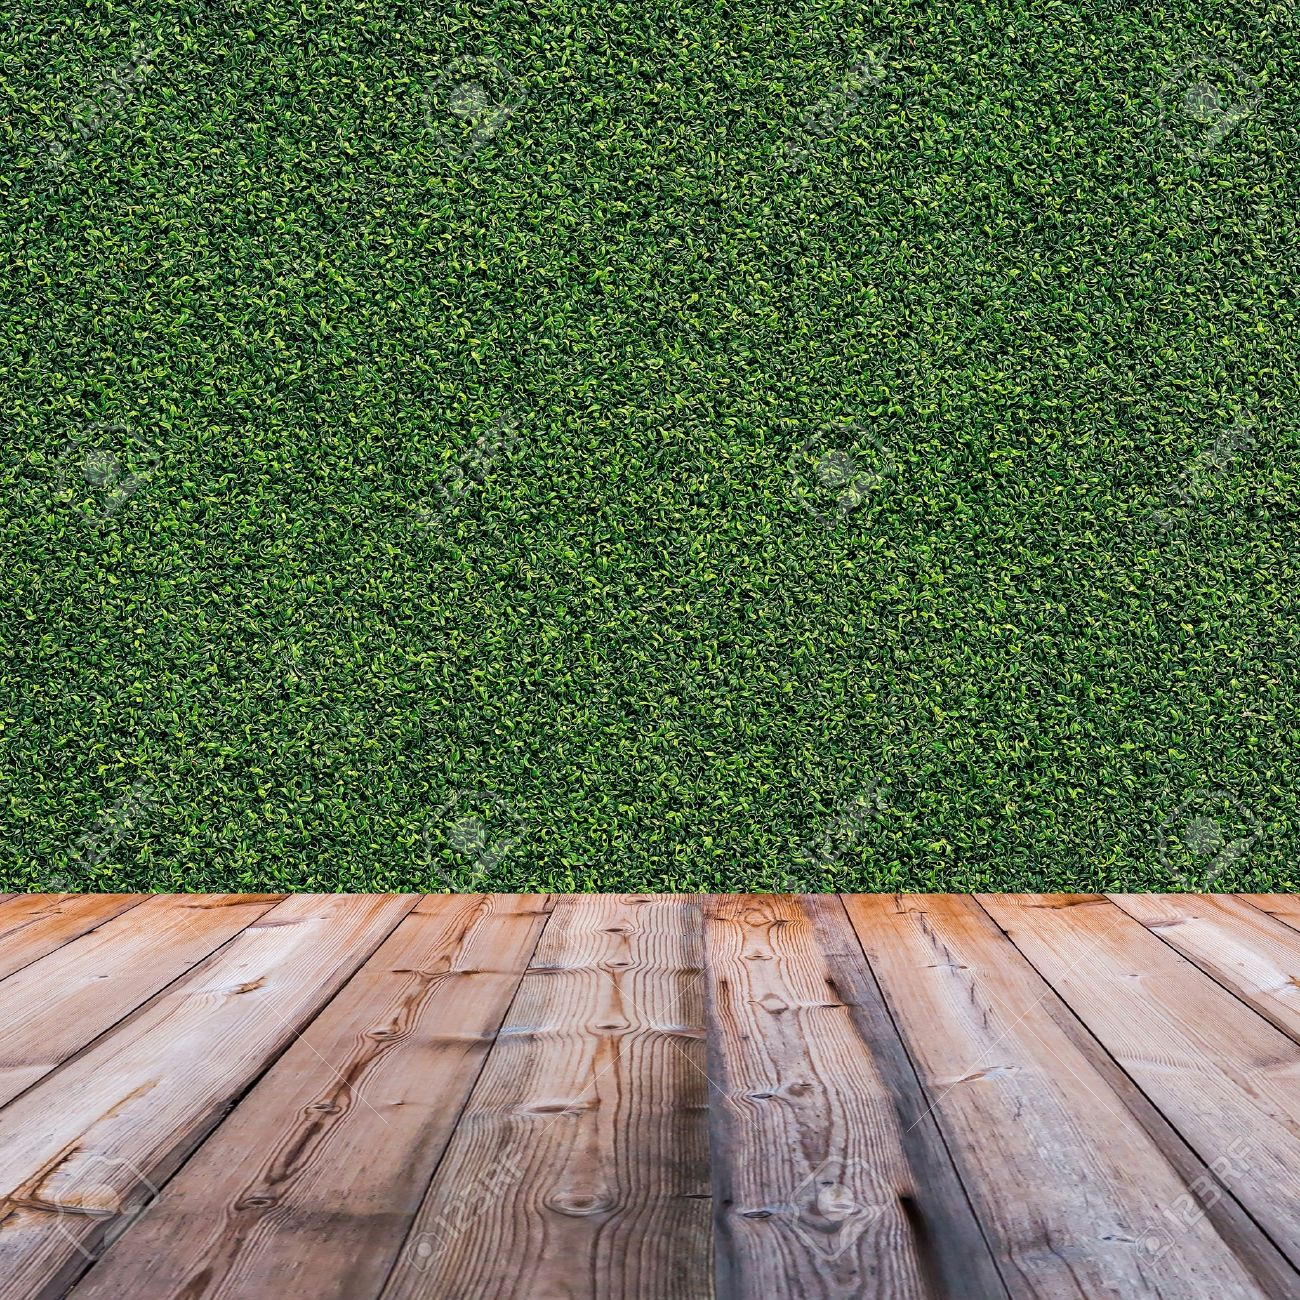 Green leaves wall and wood floor for background Stock Photo - 22064576